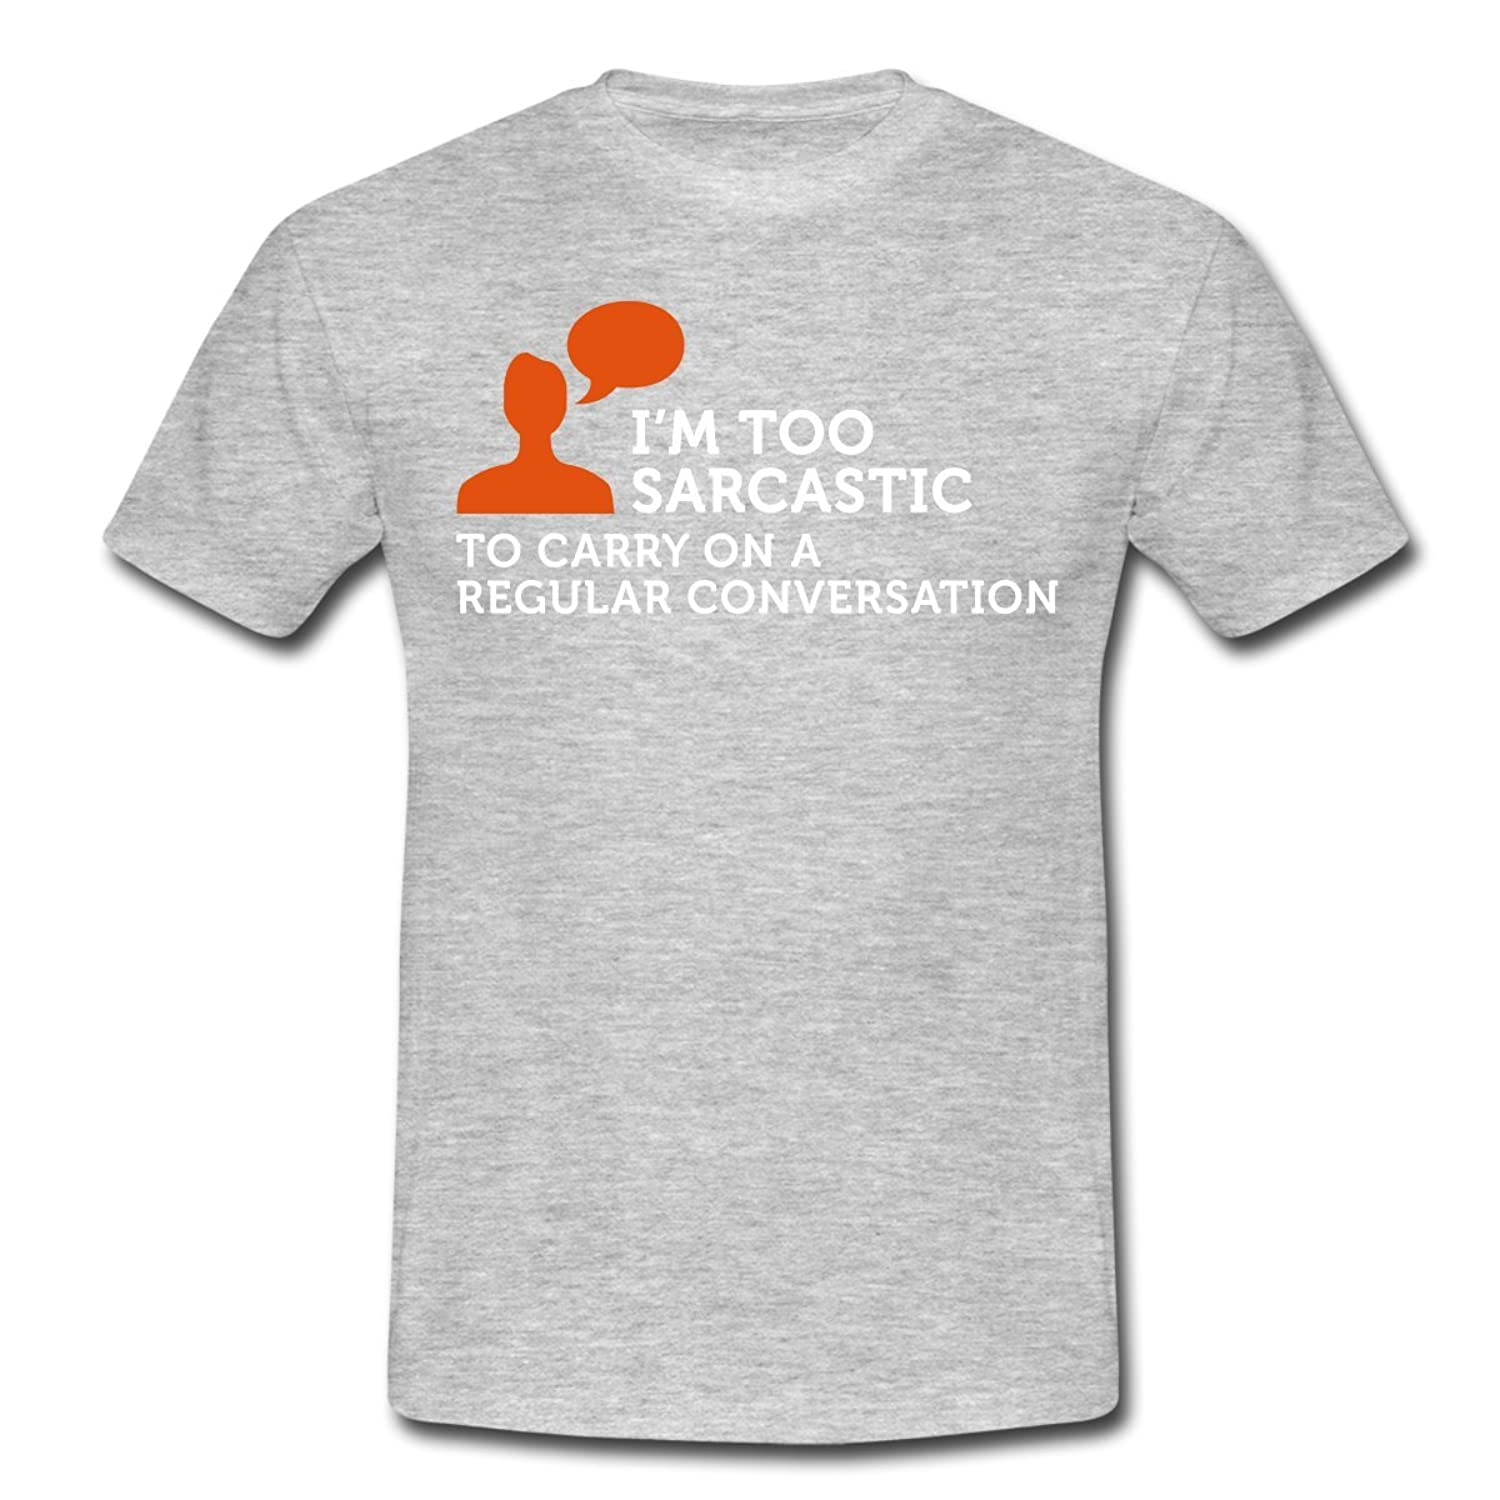 I'm too Sarcastic (2c) Men's T-Shirt by Spreadshirt??